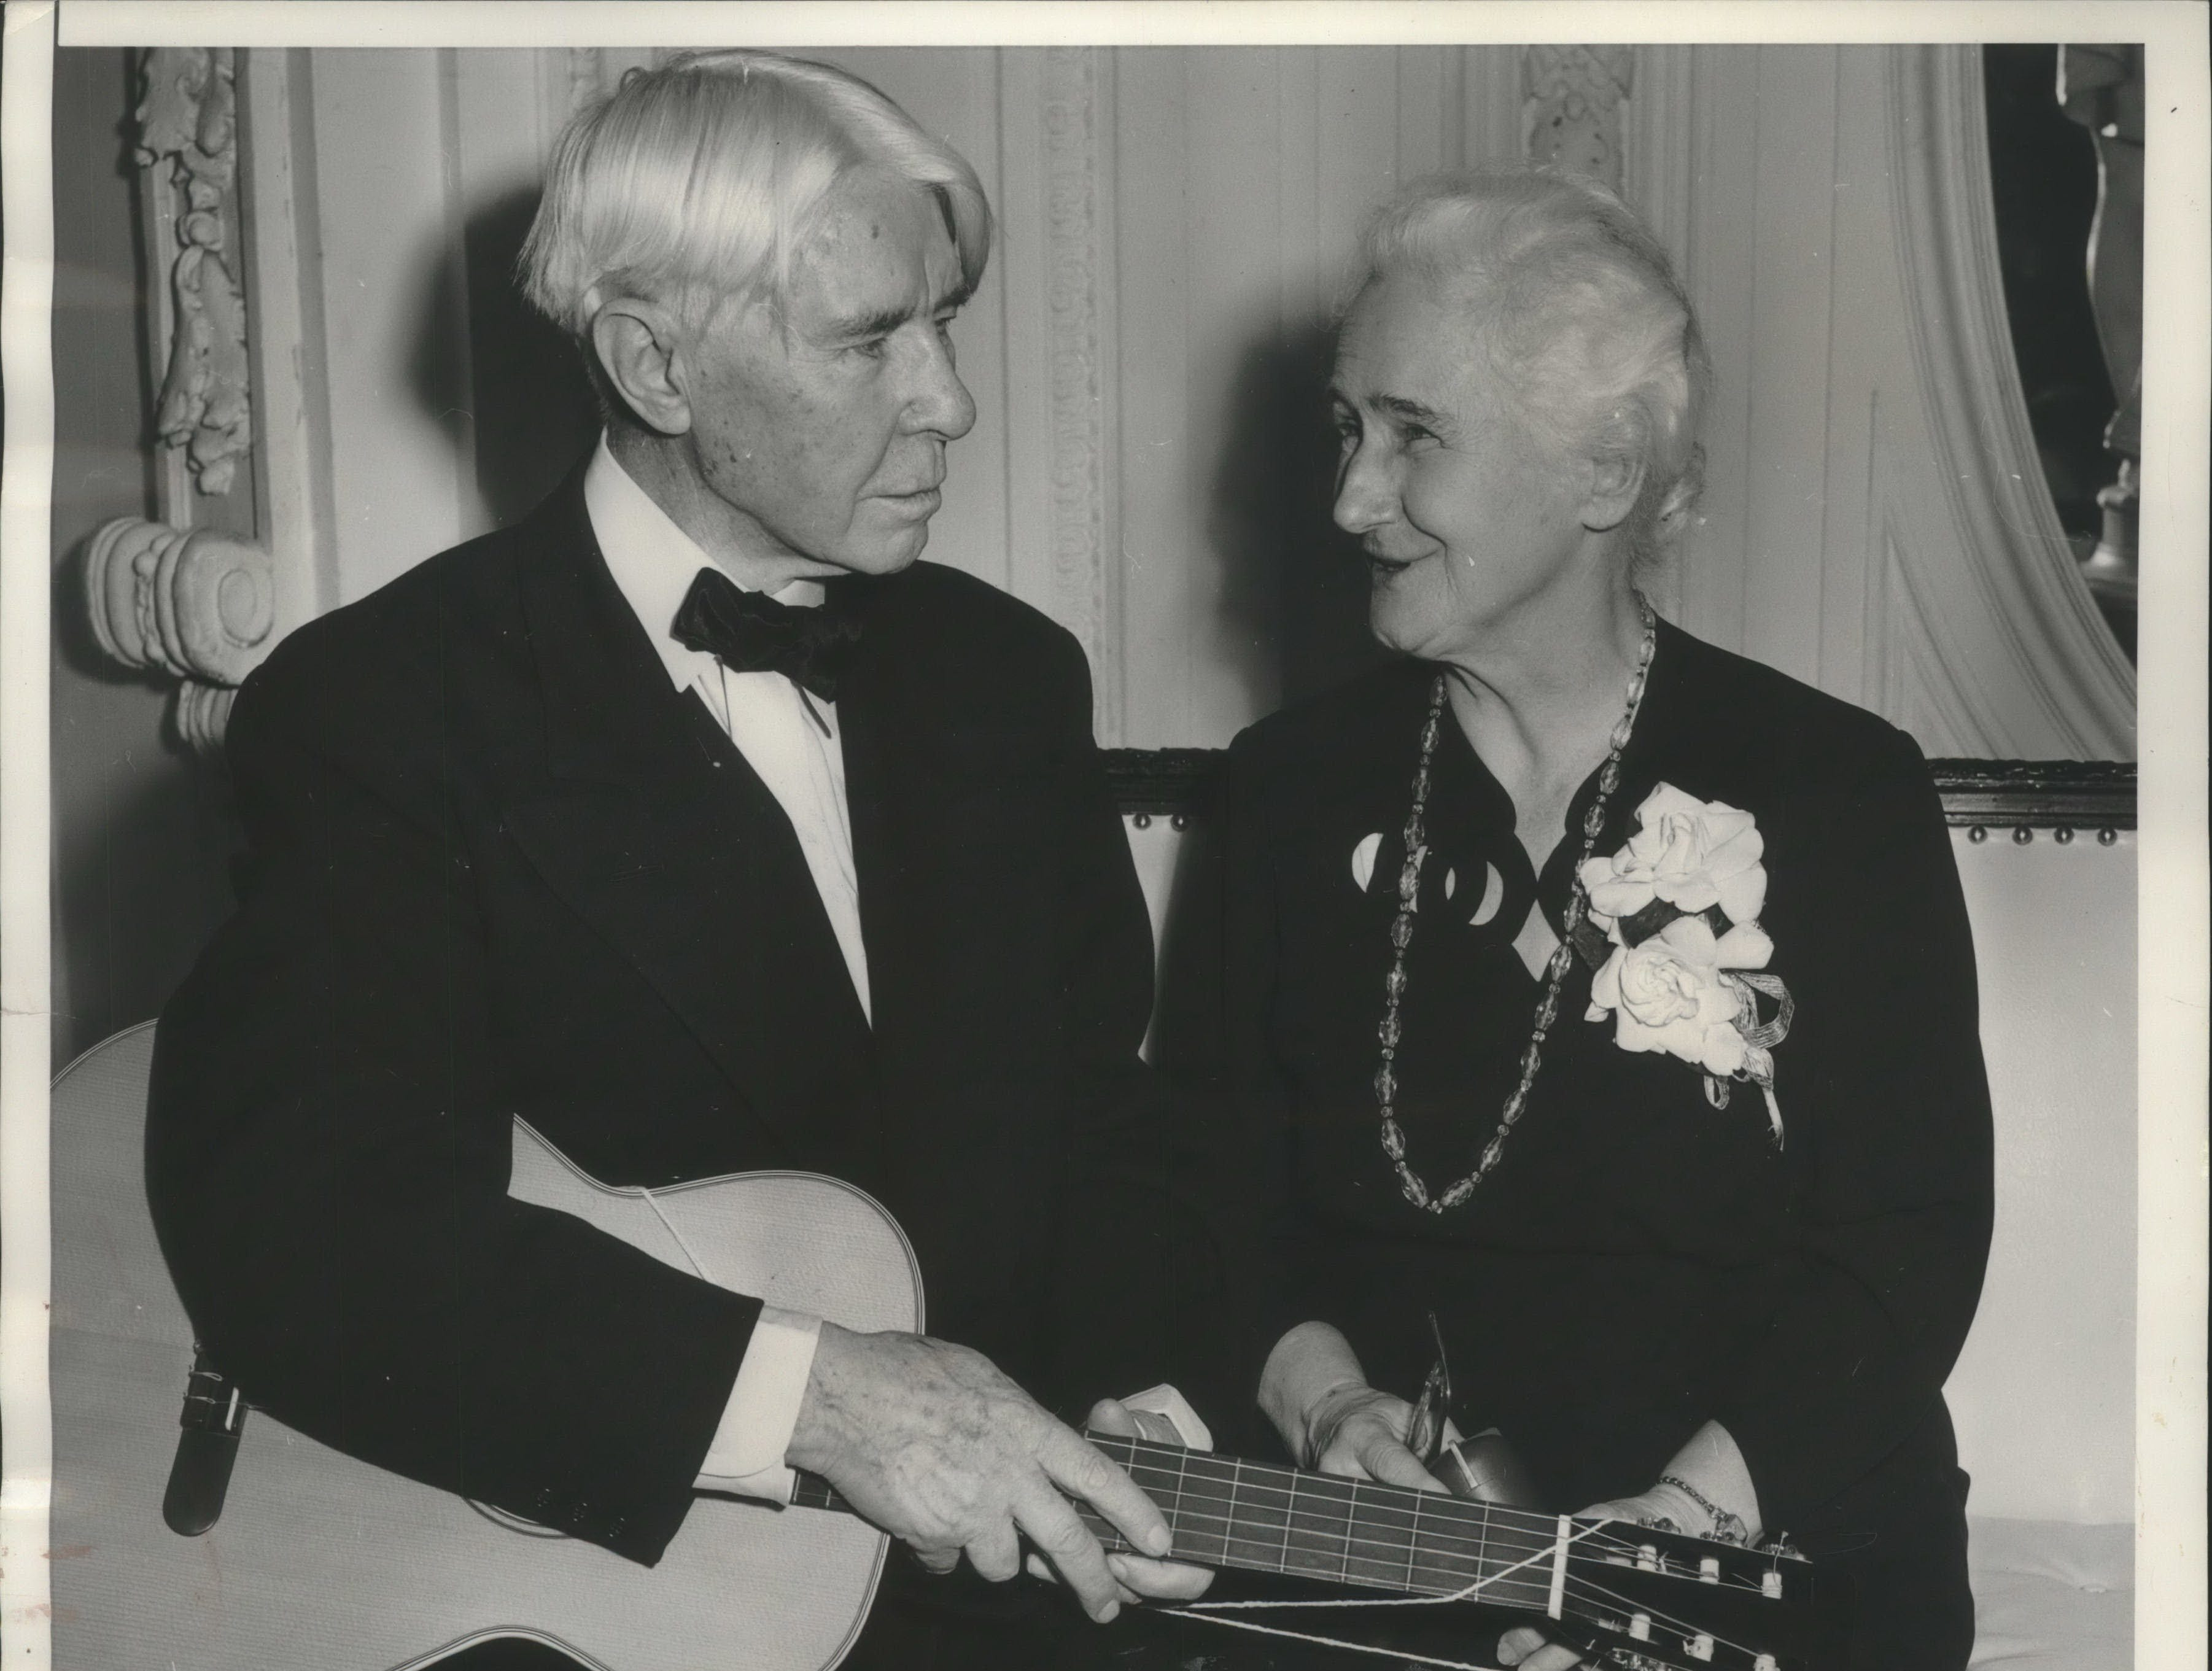 Poet and historian Carl Sandburg entertains his wife Lilian at a dinner celebrating his 75th birthday in Chicago.